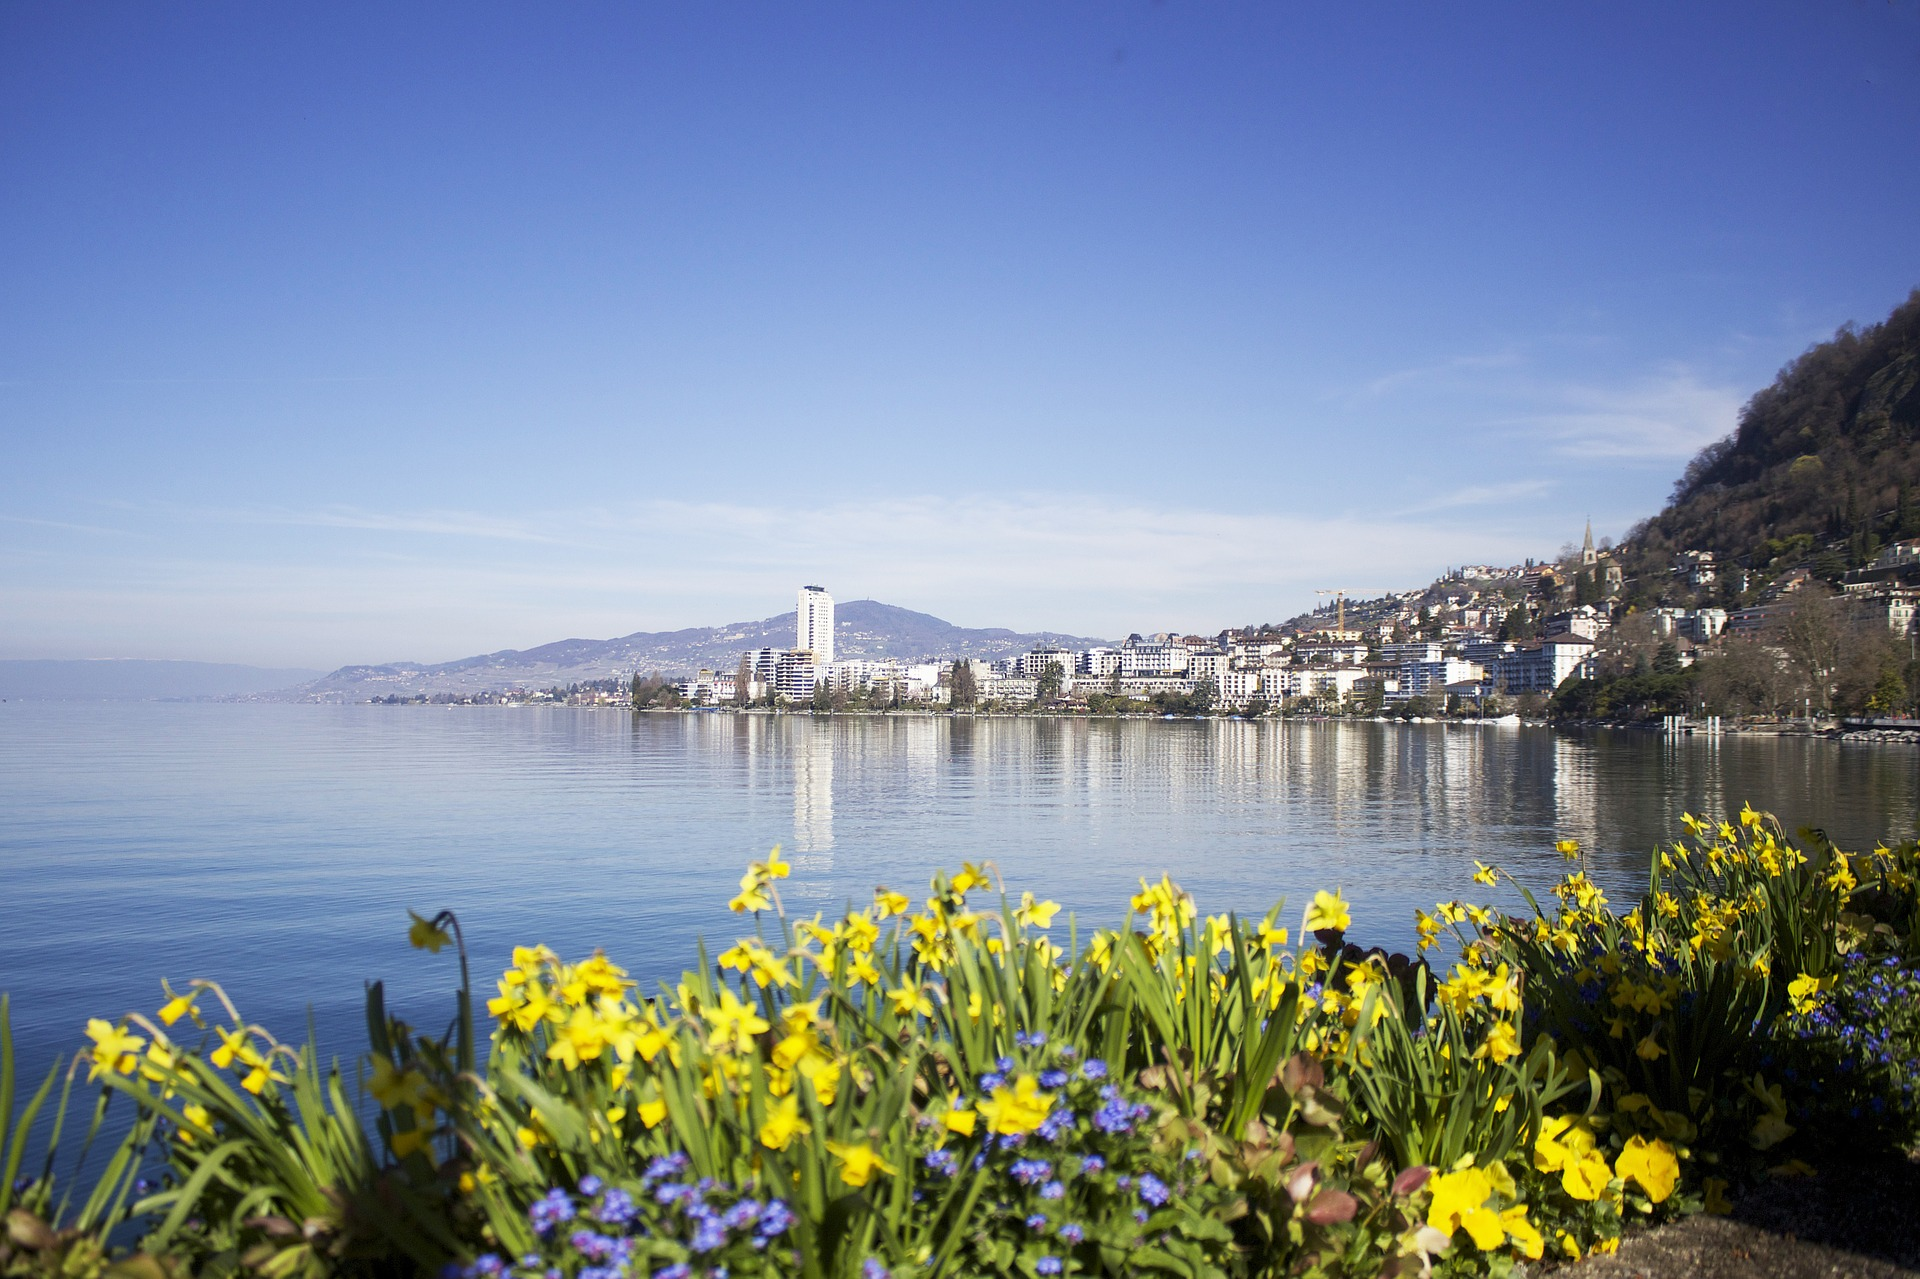 20 best things to do in Switzerland - Montreux